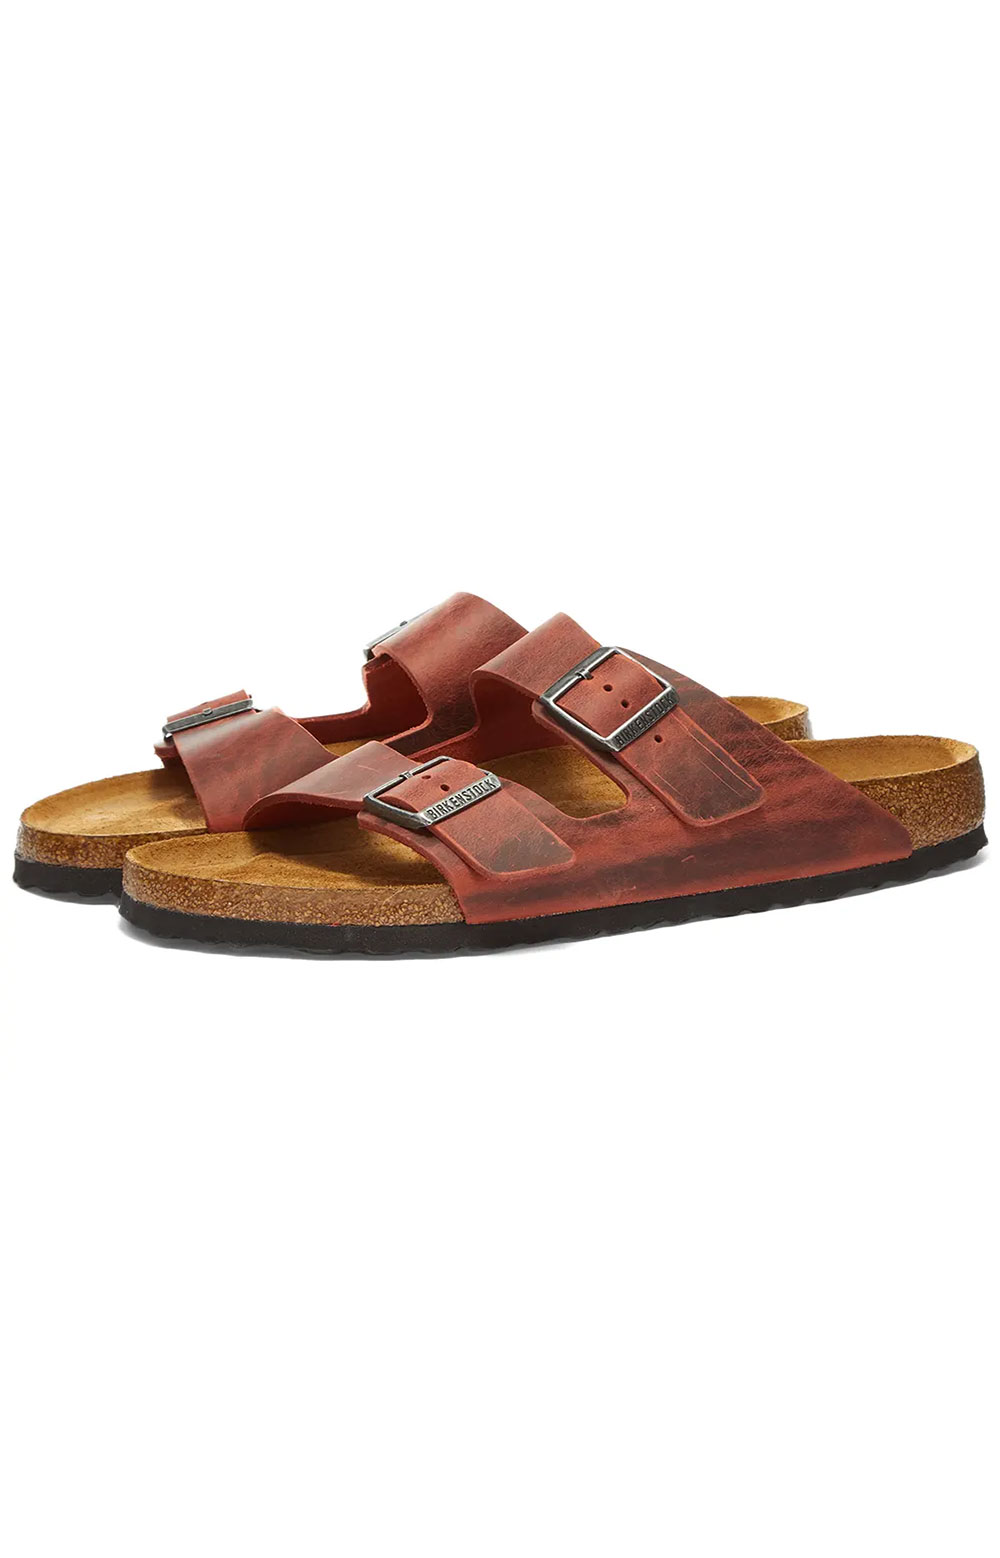 (1015544) Arizona Soft Footbed Sandals - Red Oil